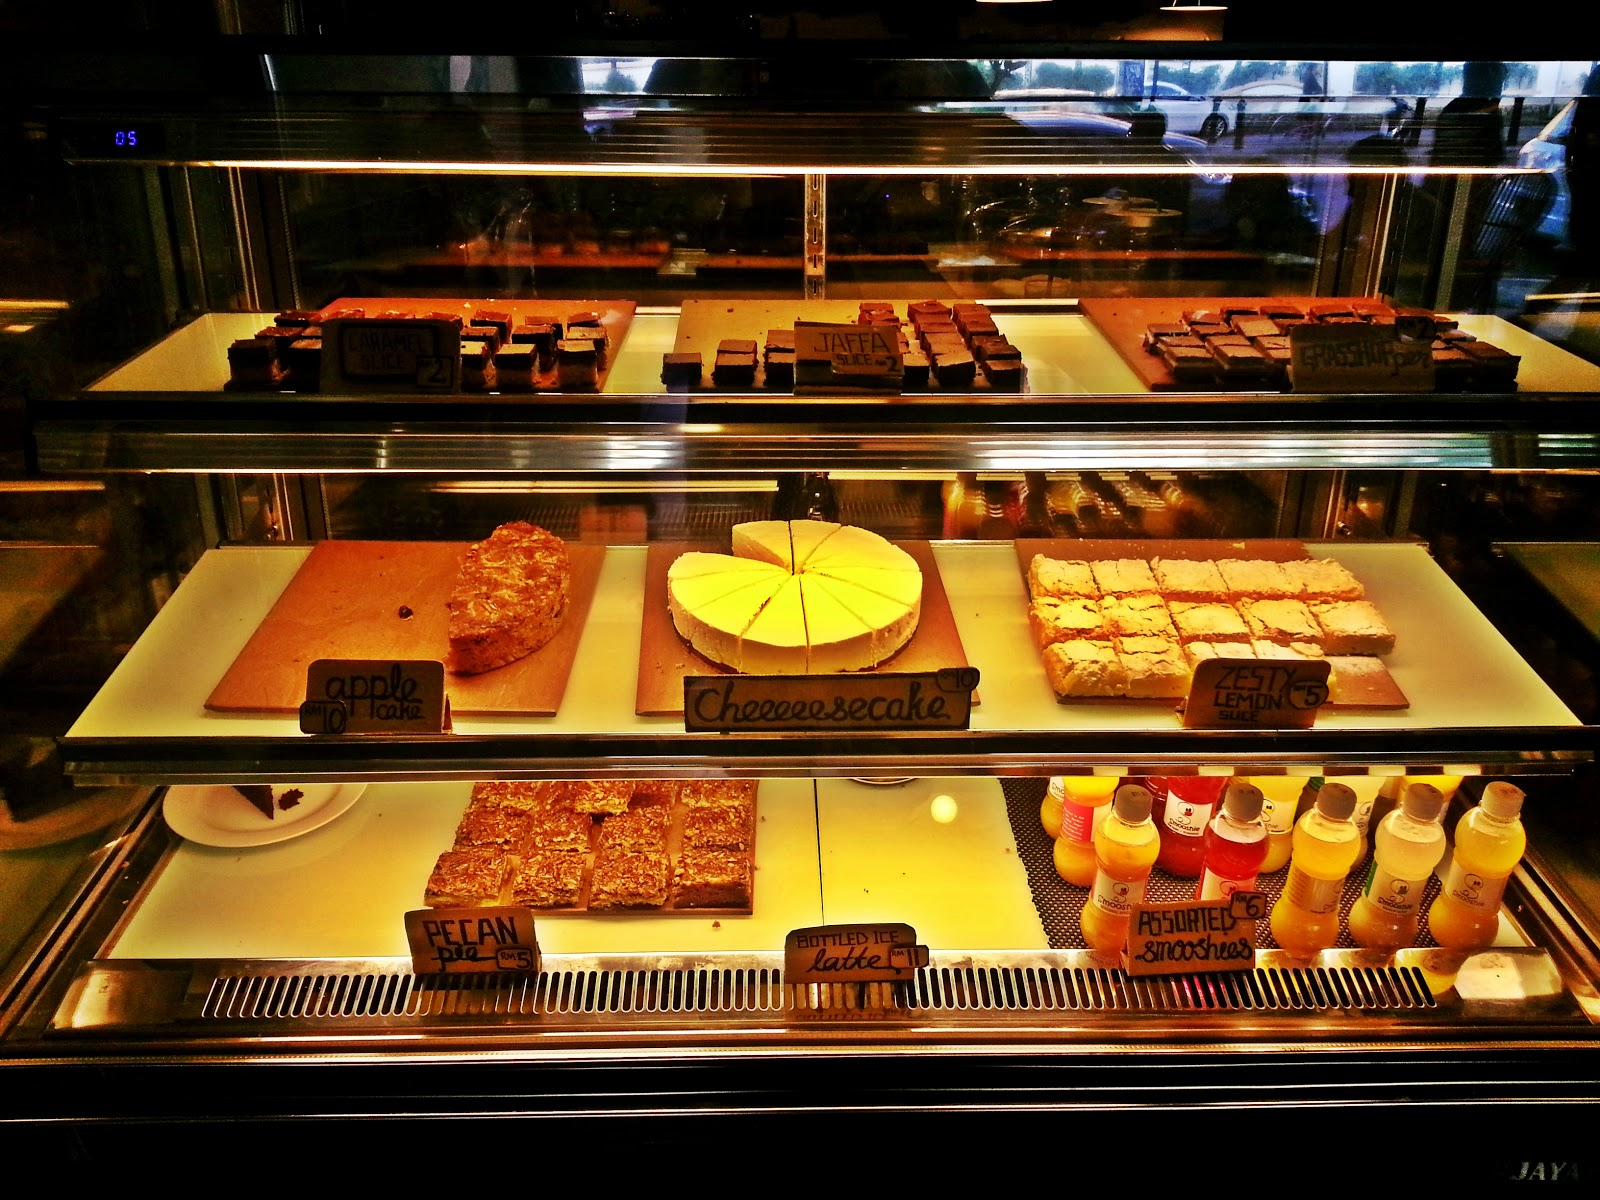 Selection of delicious cakes on display. Photo from Eatisdaisai.